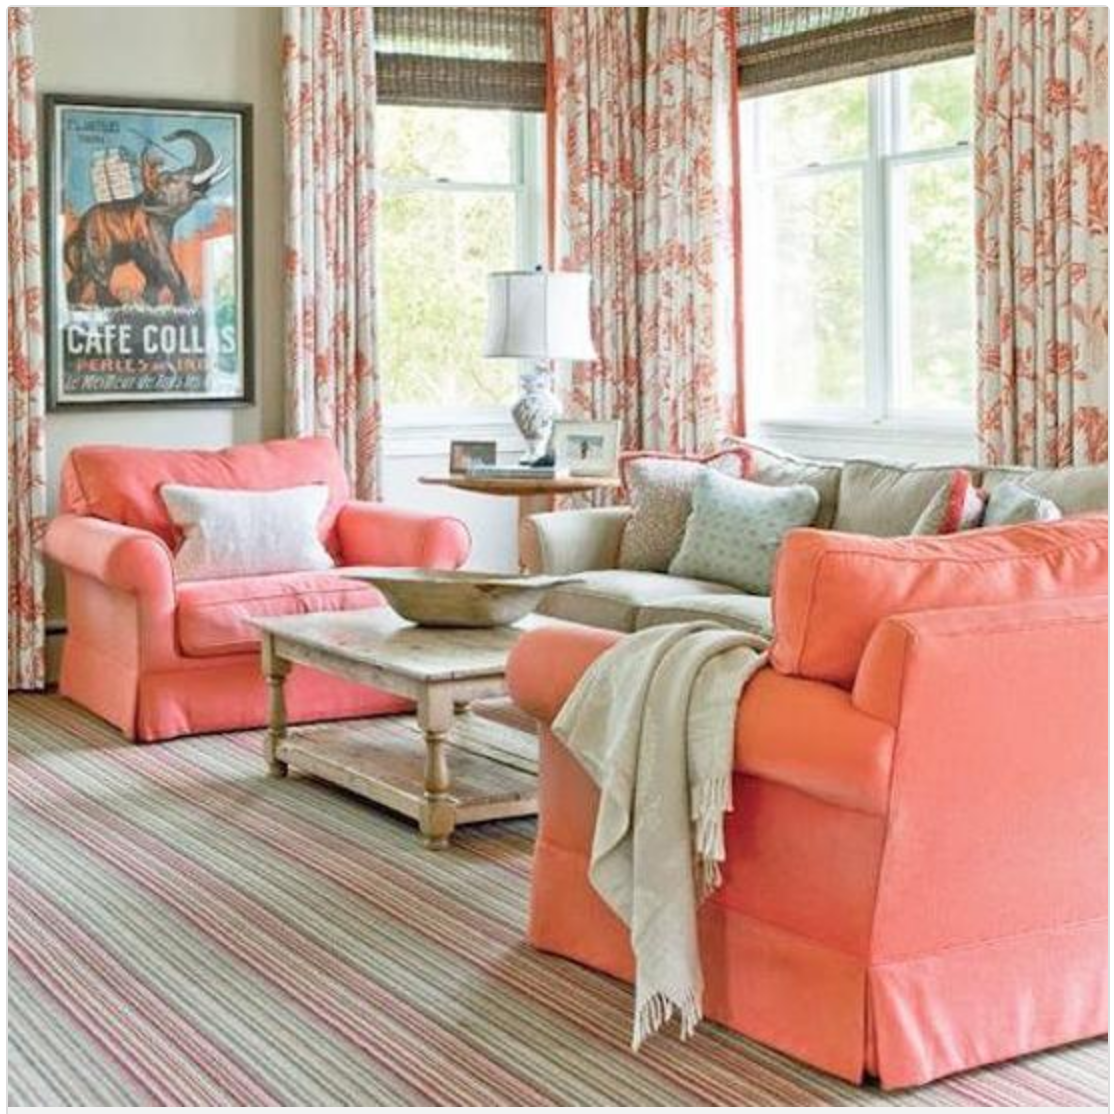 Pantone Living Coral Used in Home Decor is what it is all about here today! All different ideas and ways to use this new ALIVE color!